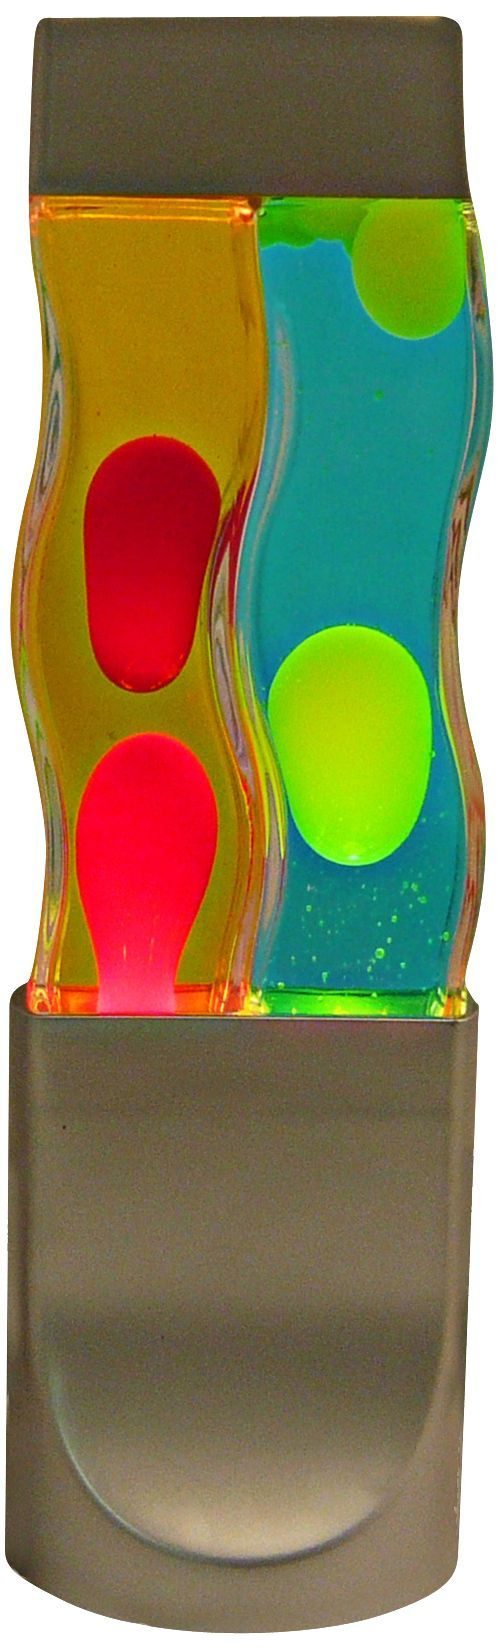 Lava lamp overnight - Yellow And Groovy Red Twin Lava Lamp Eurostylelighting Com